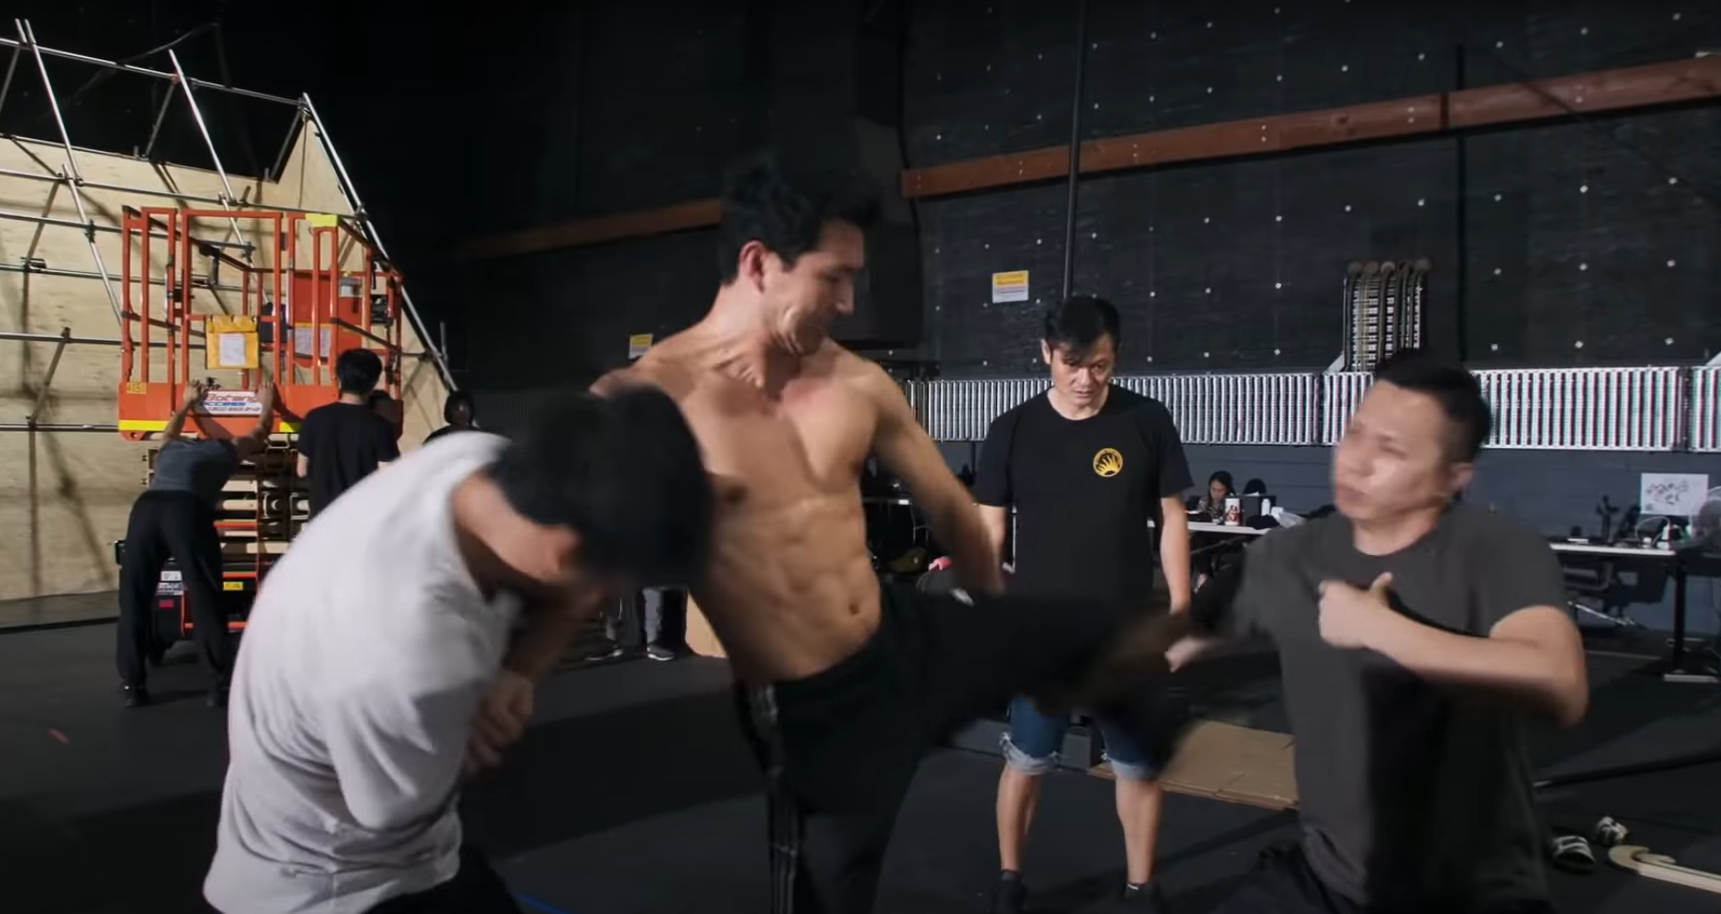 The time when the actor Simu Liu was ready for the fight to tackle his next opponent.